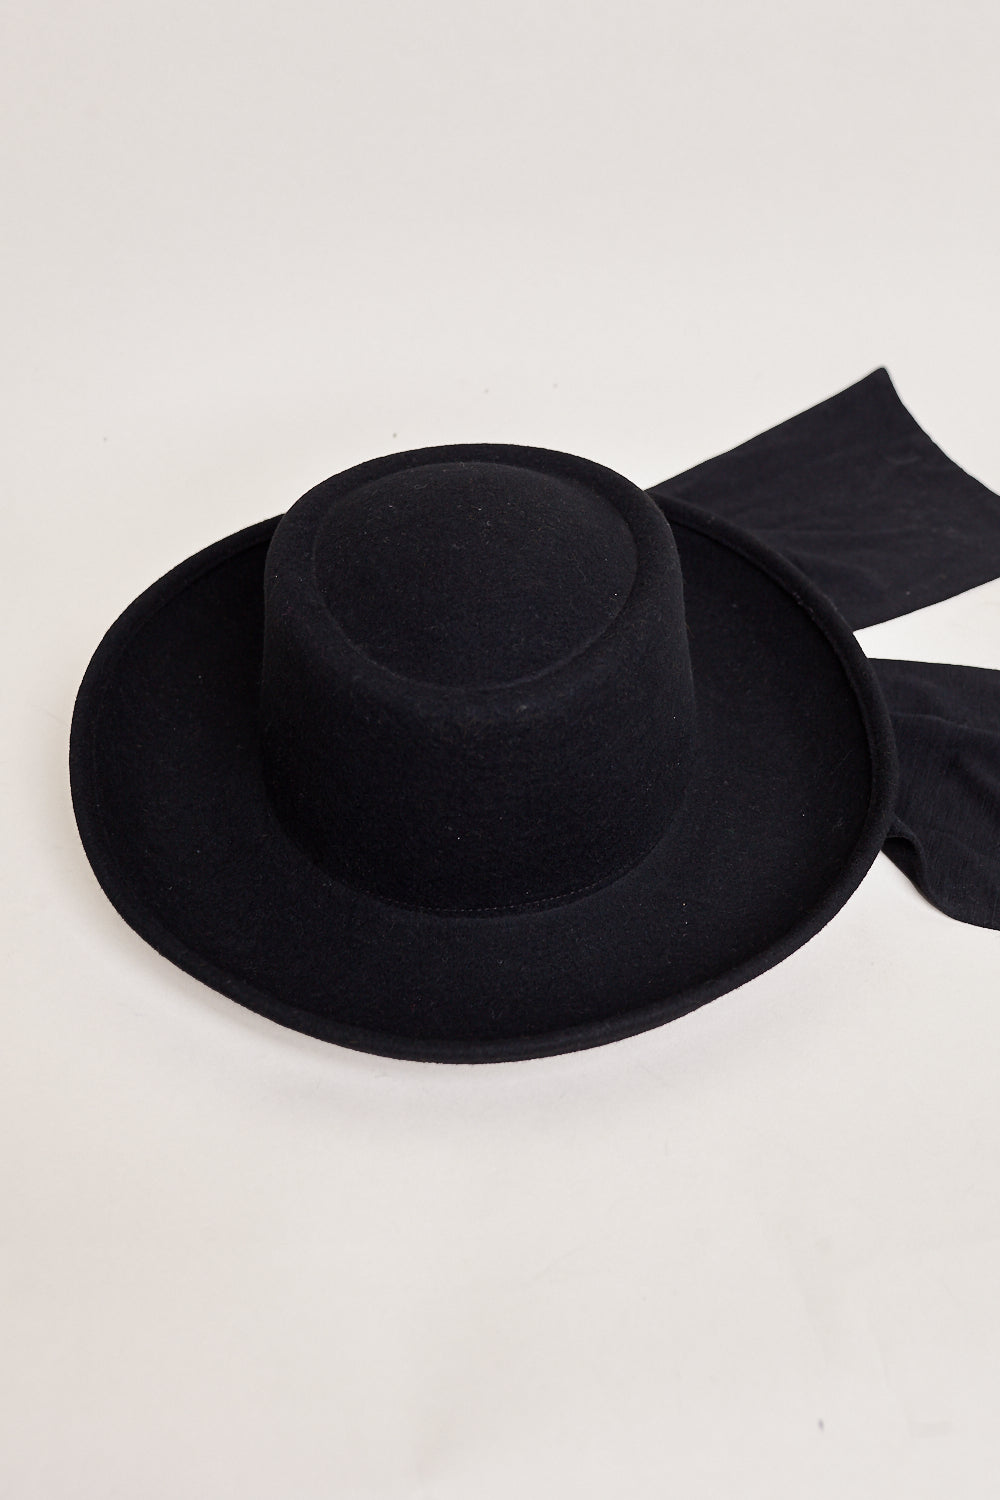 Clyde Gambler Hat in Black - Vert & Vogue